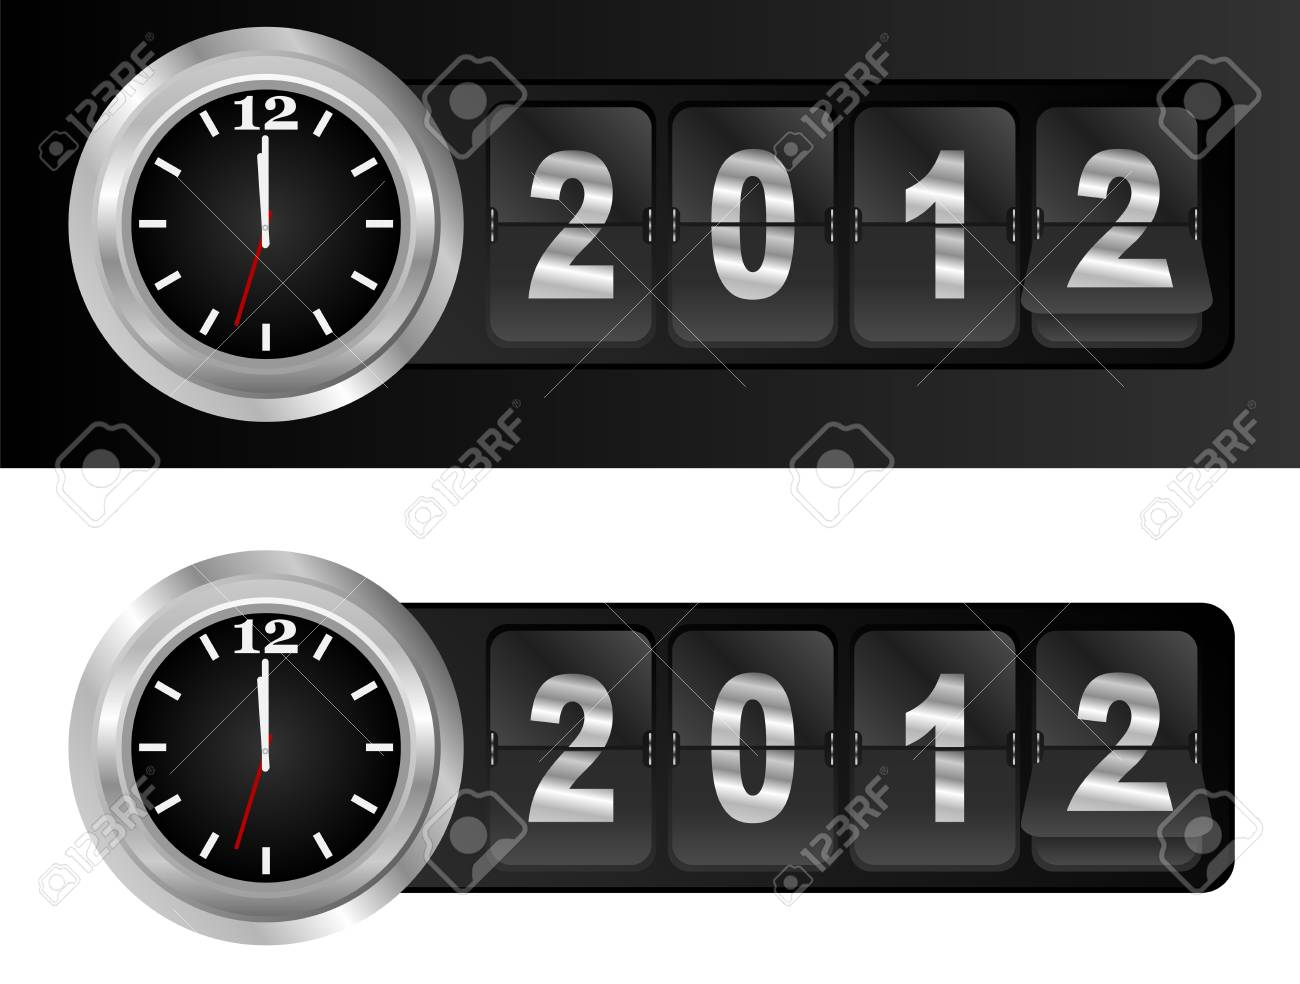 New Year 2012 Sign and Silver Cock in Airport Time Style Stock Vector - 10825970